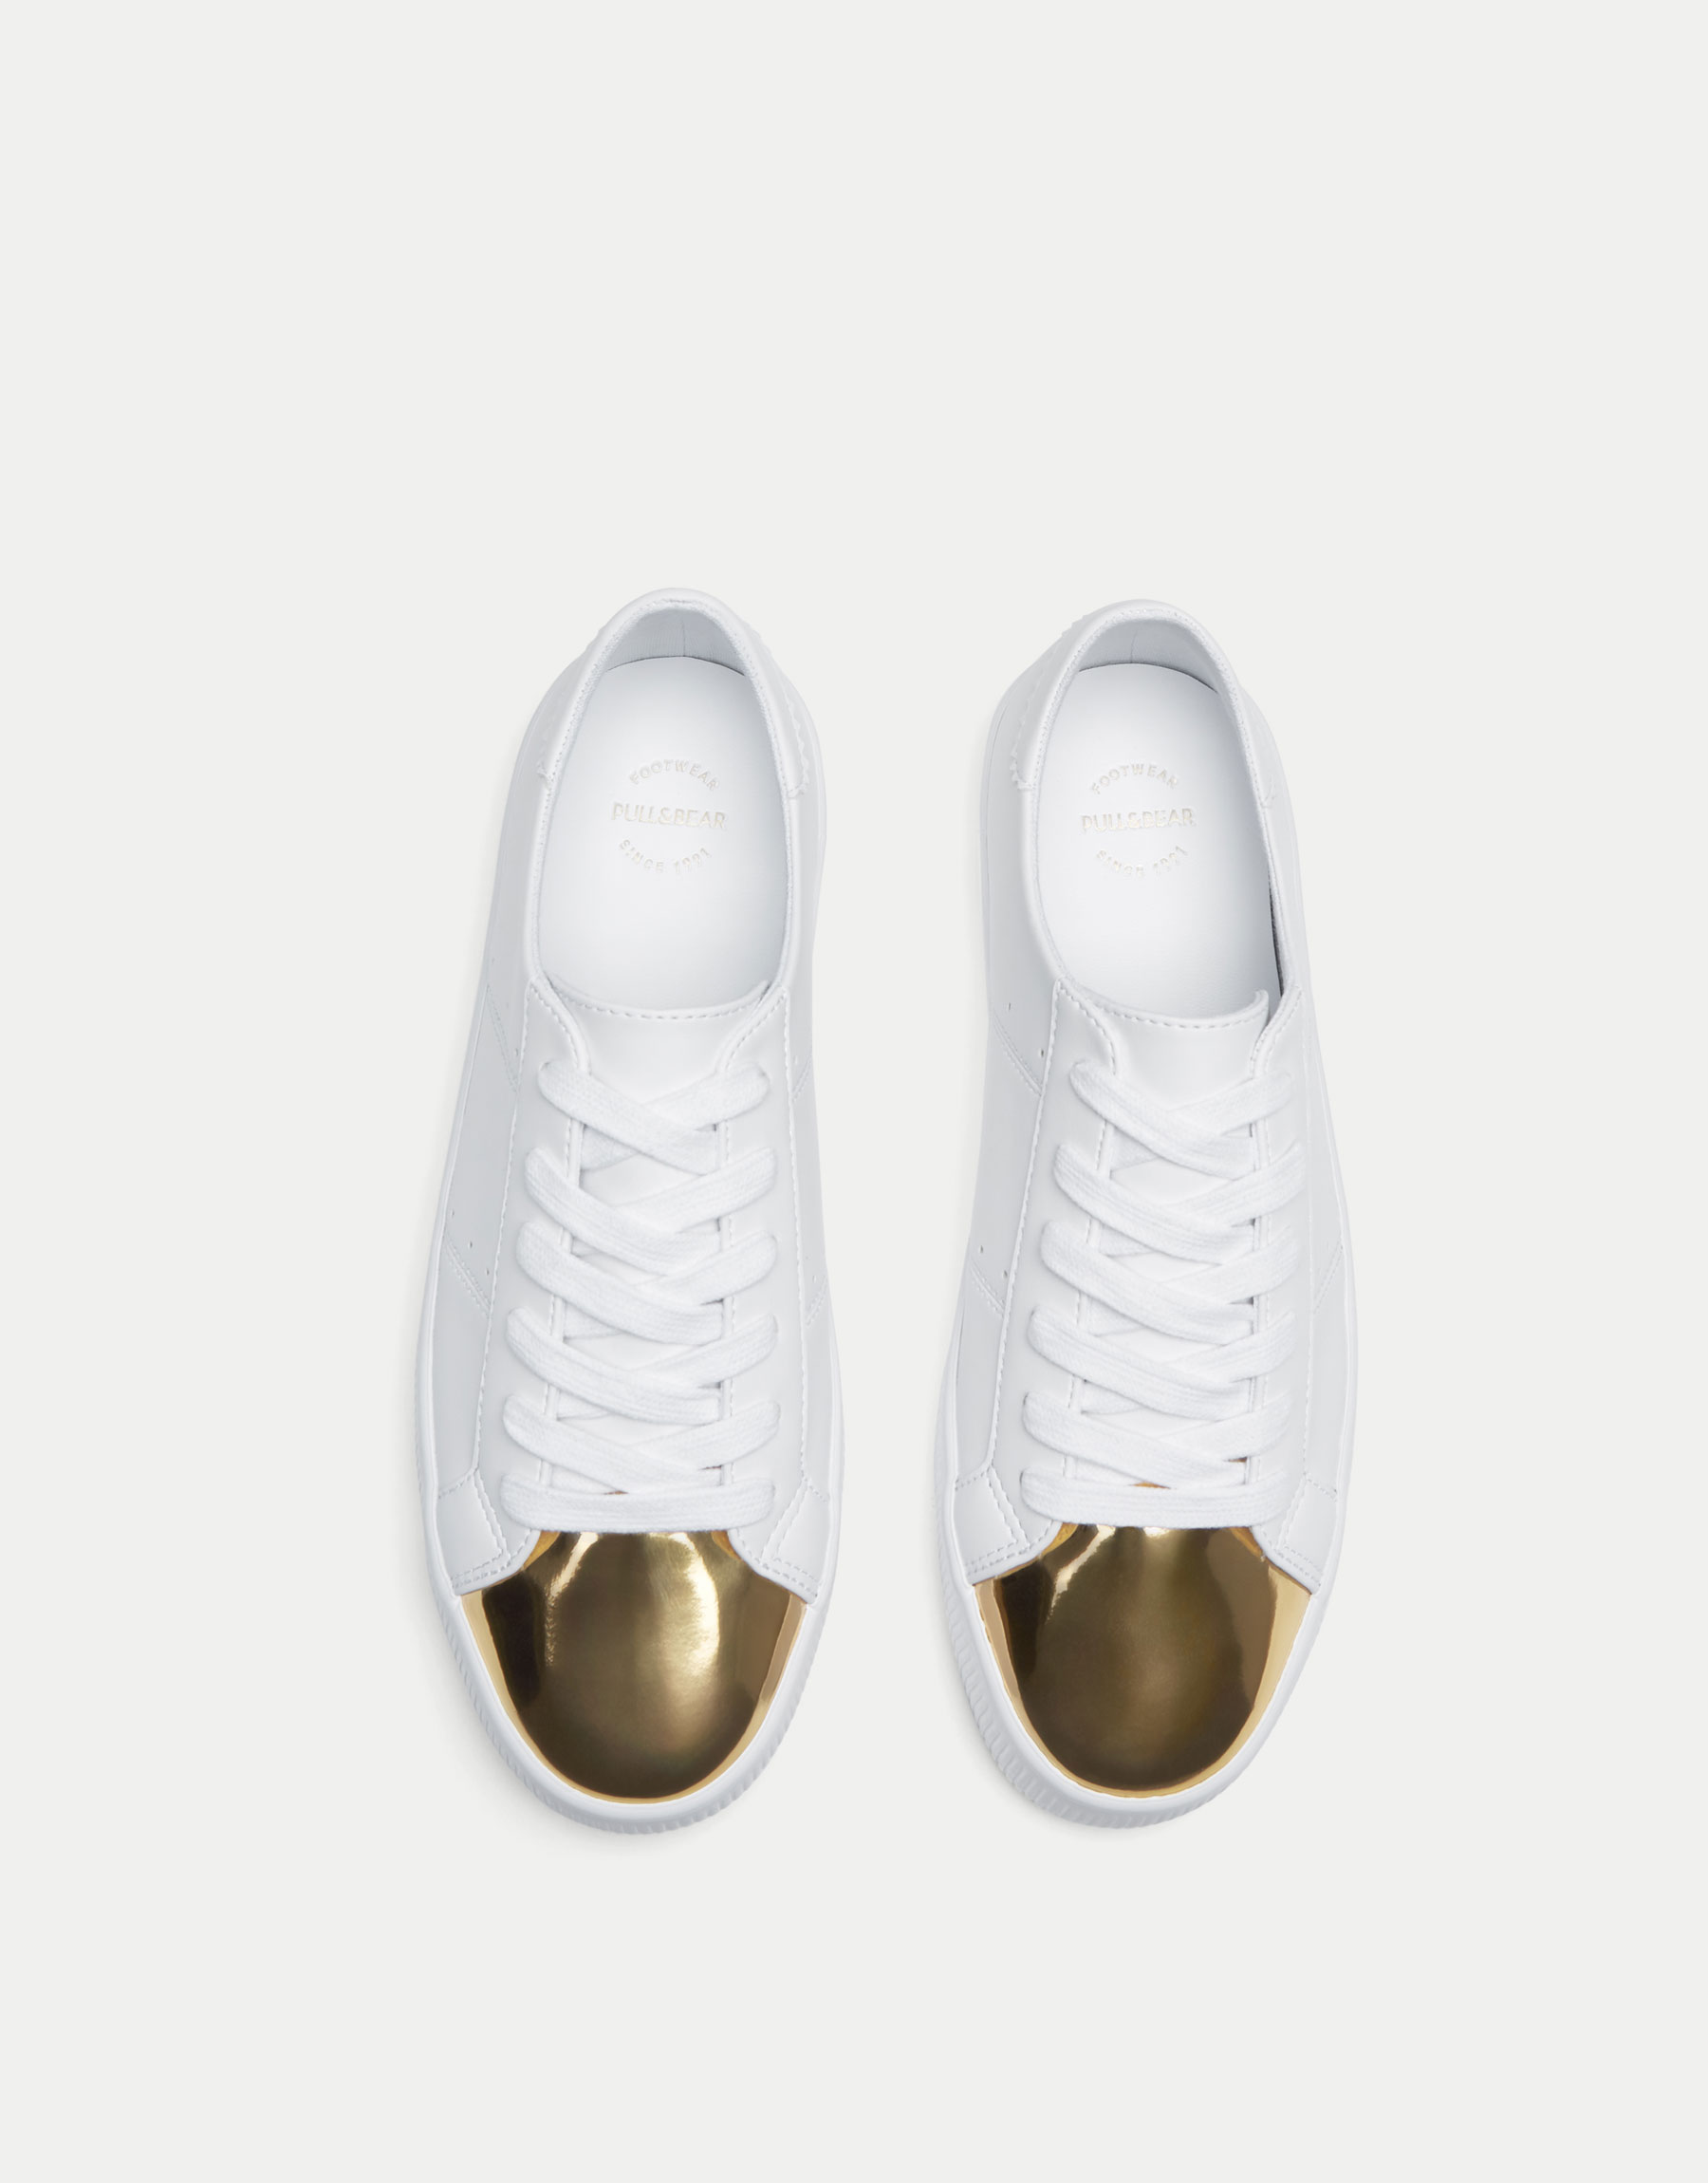 Sneakers with gold toe cap